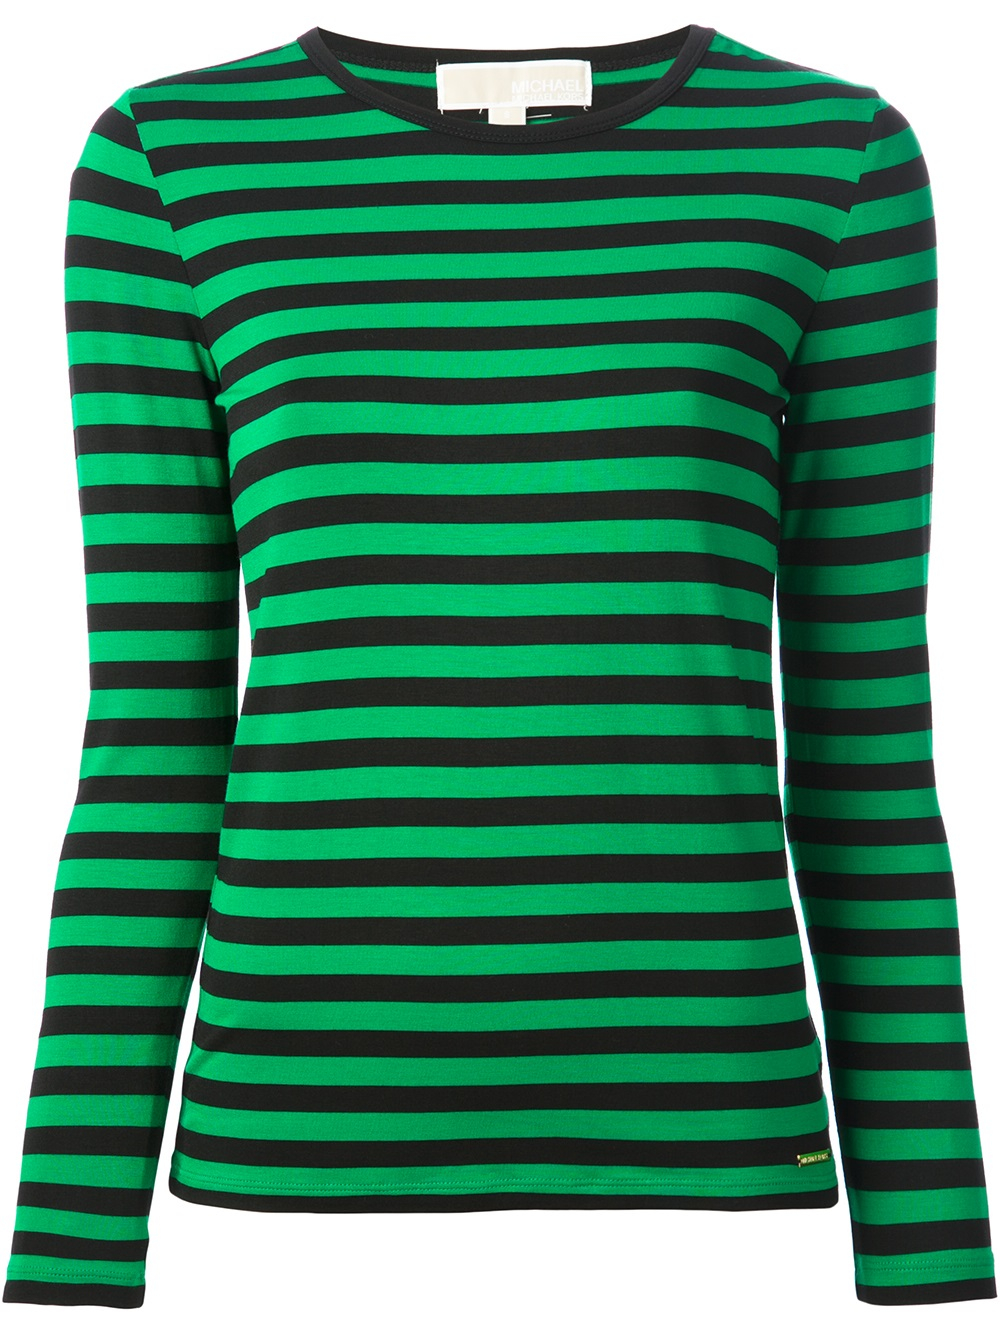 746eb21f63 Green Striped T Shirt Womens